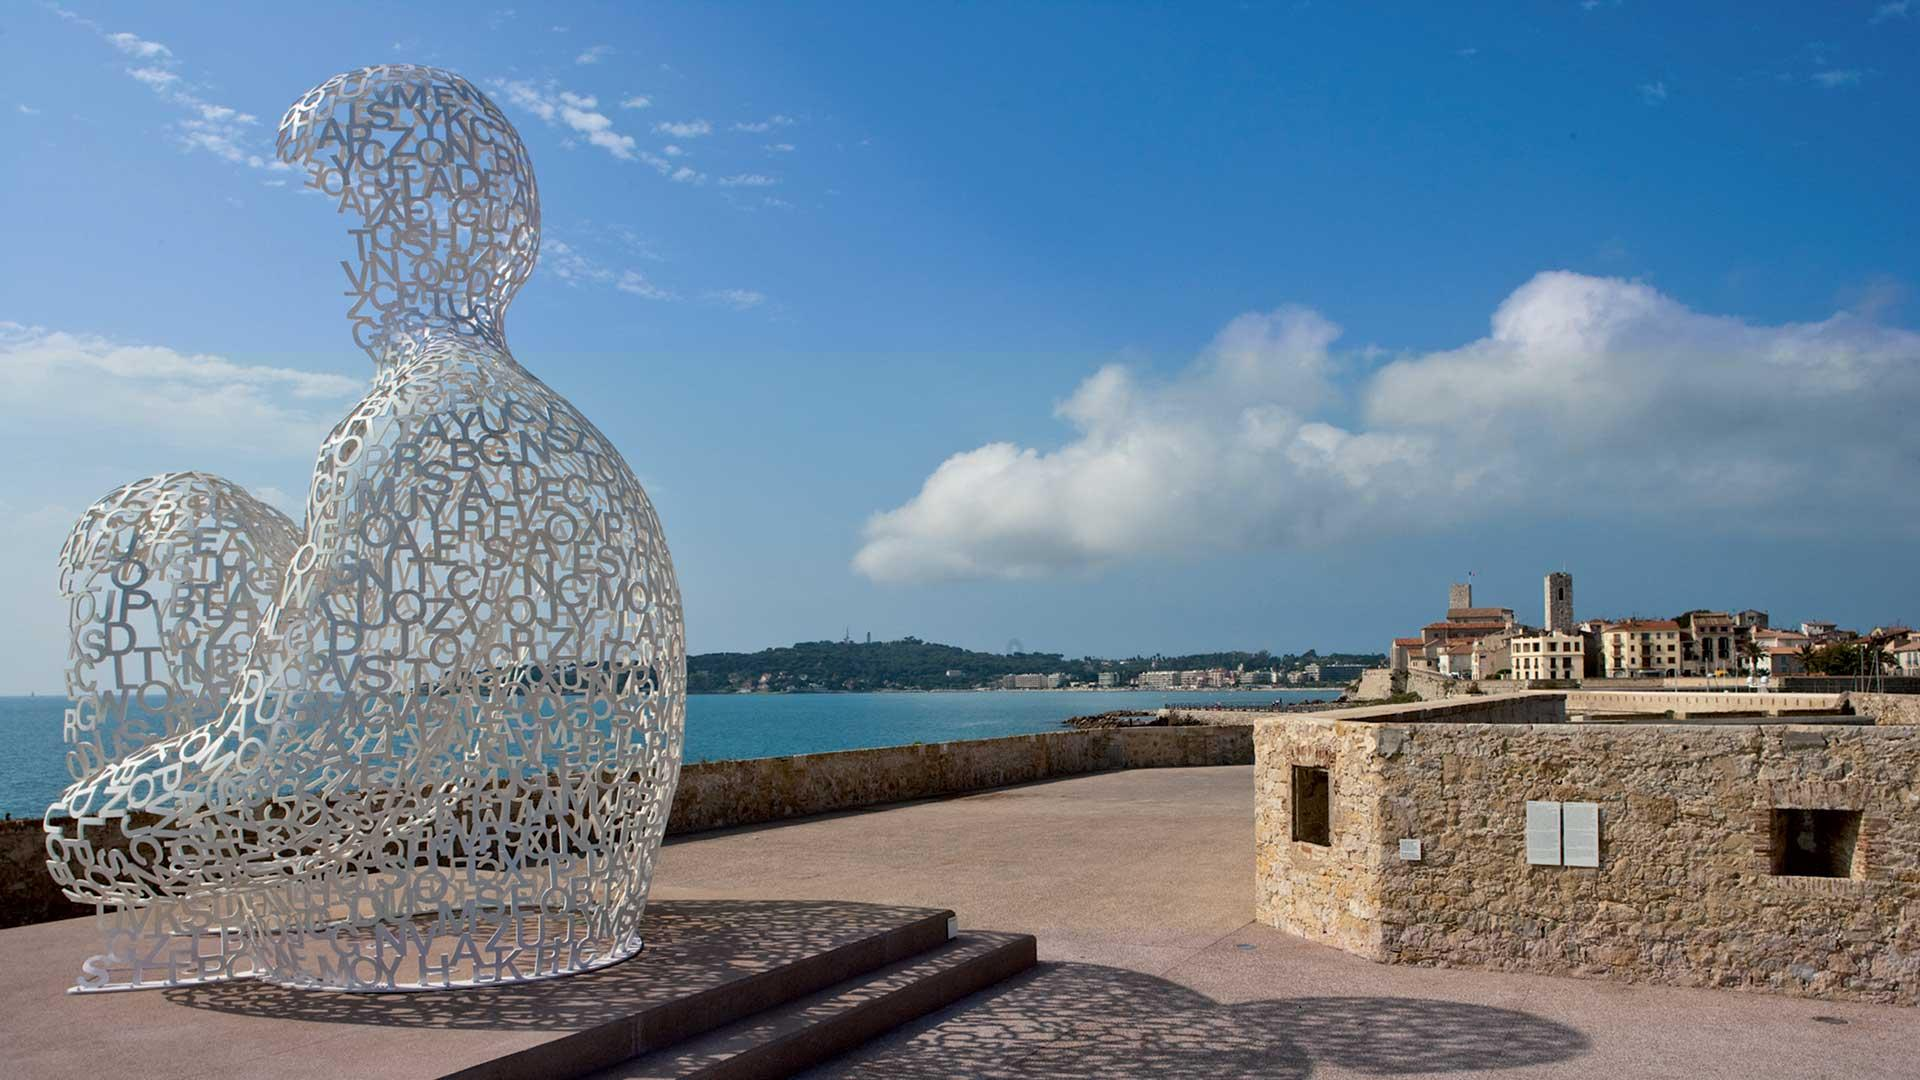 Musee Picasso Antibes Jbrosset Ot Antibes